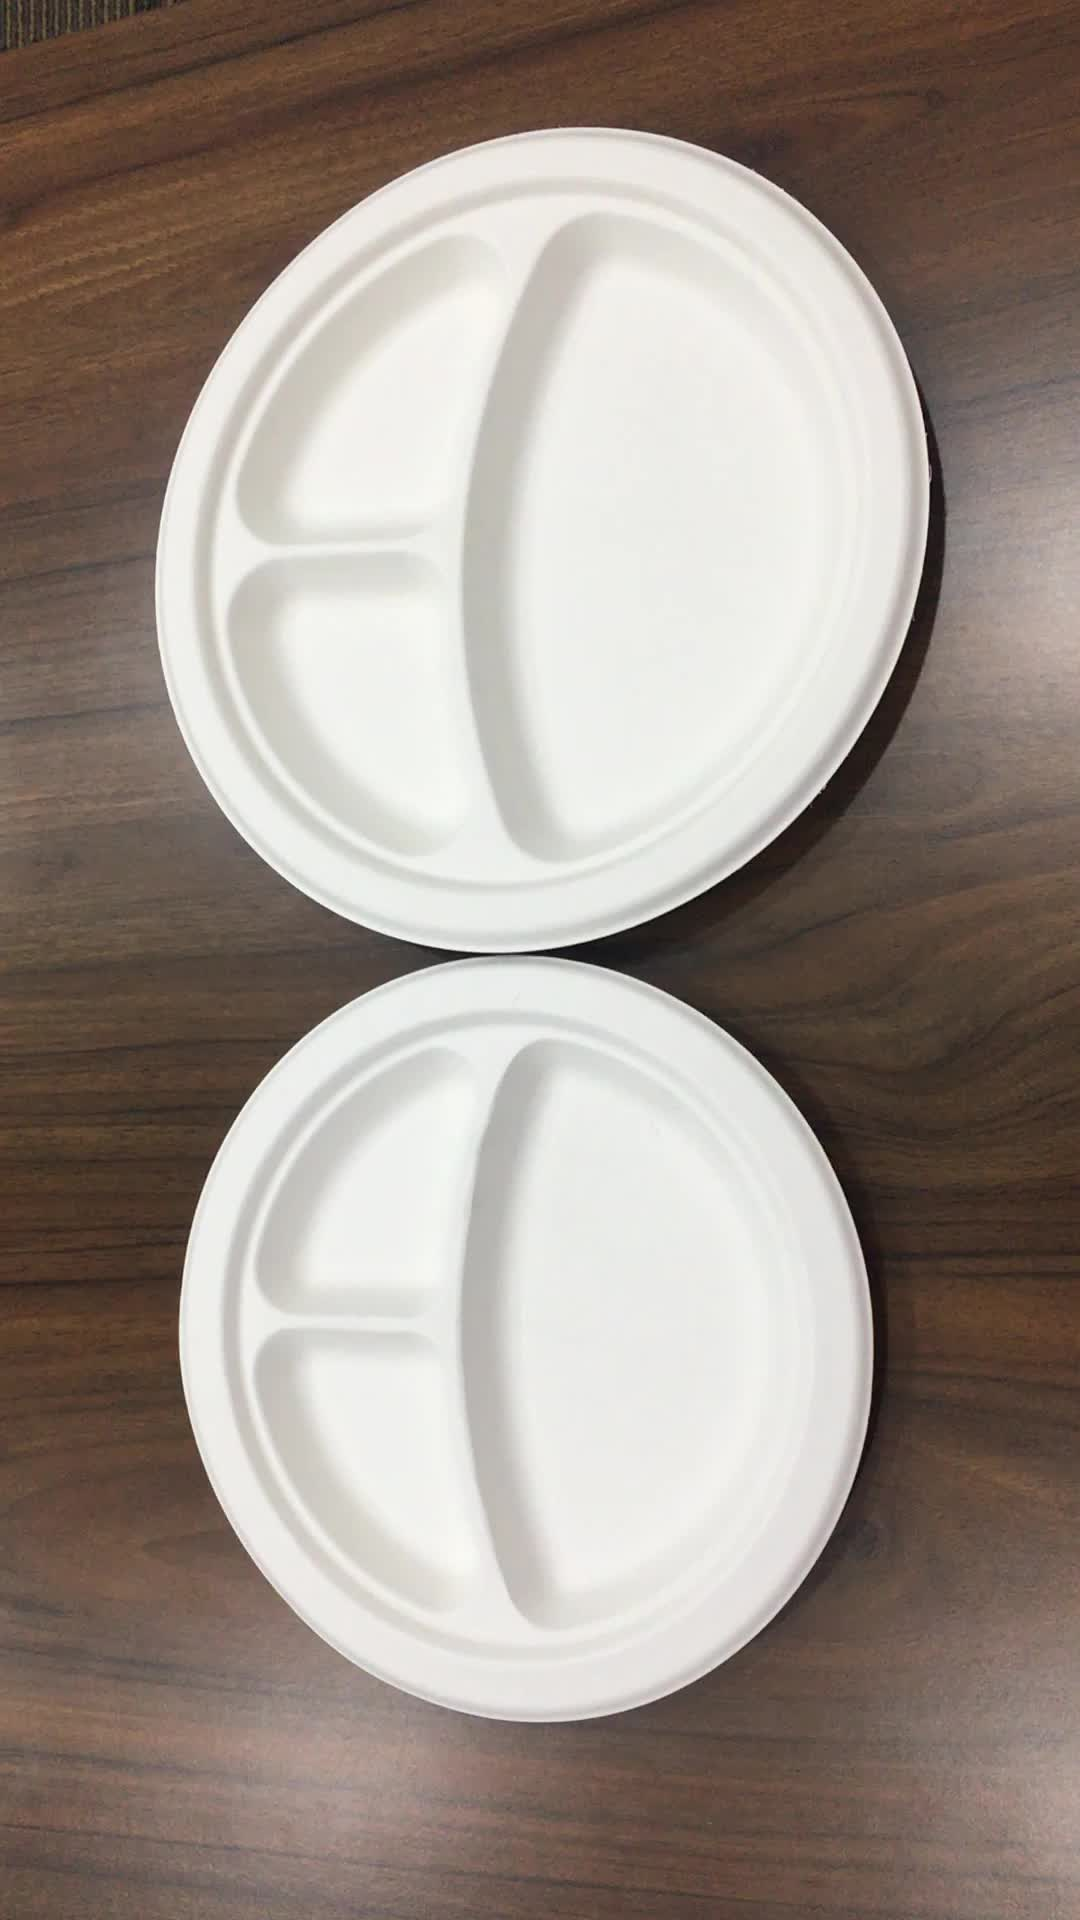 Customized molded pulp biodegradable ided dinner plates & Customized Molded Pulp Biodegradable Divided Dinner Plates - Buy ...